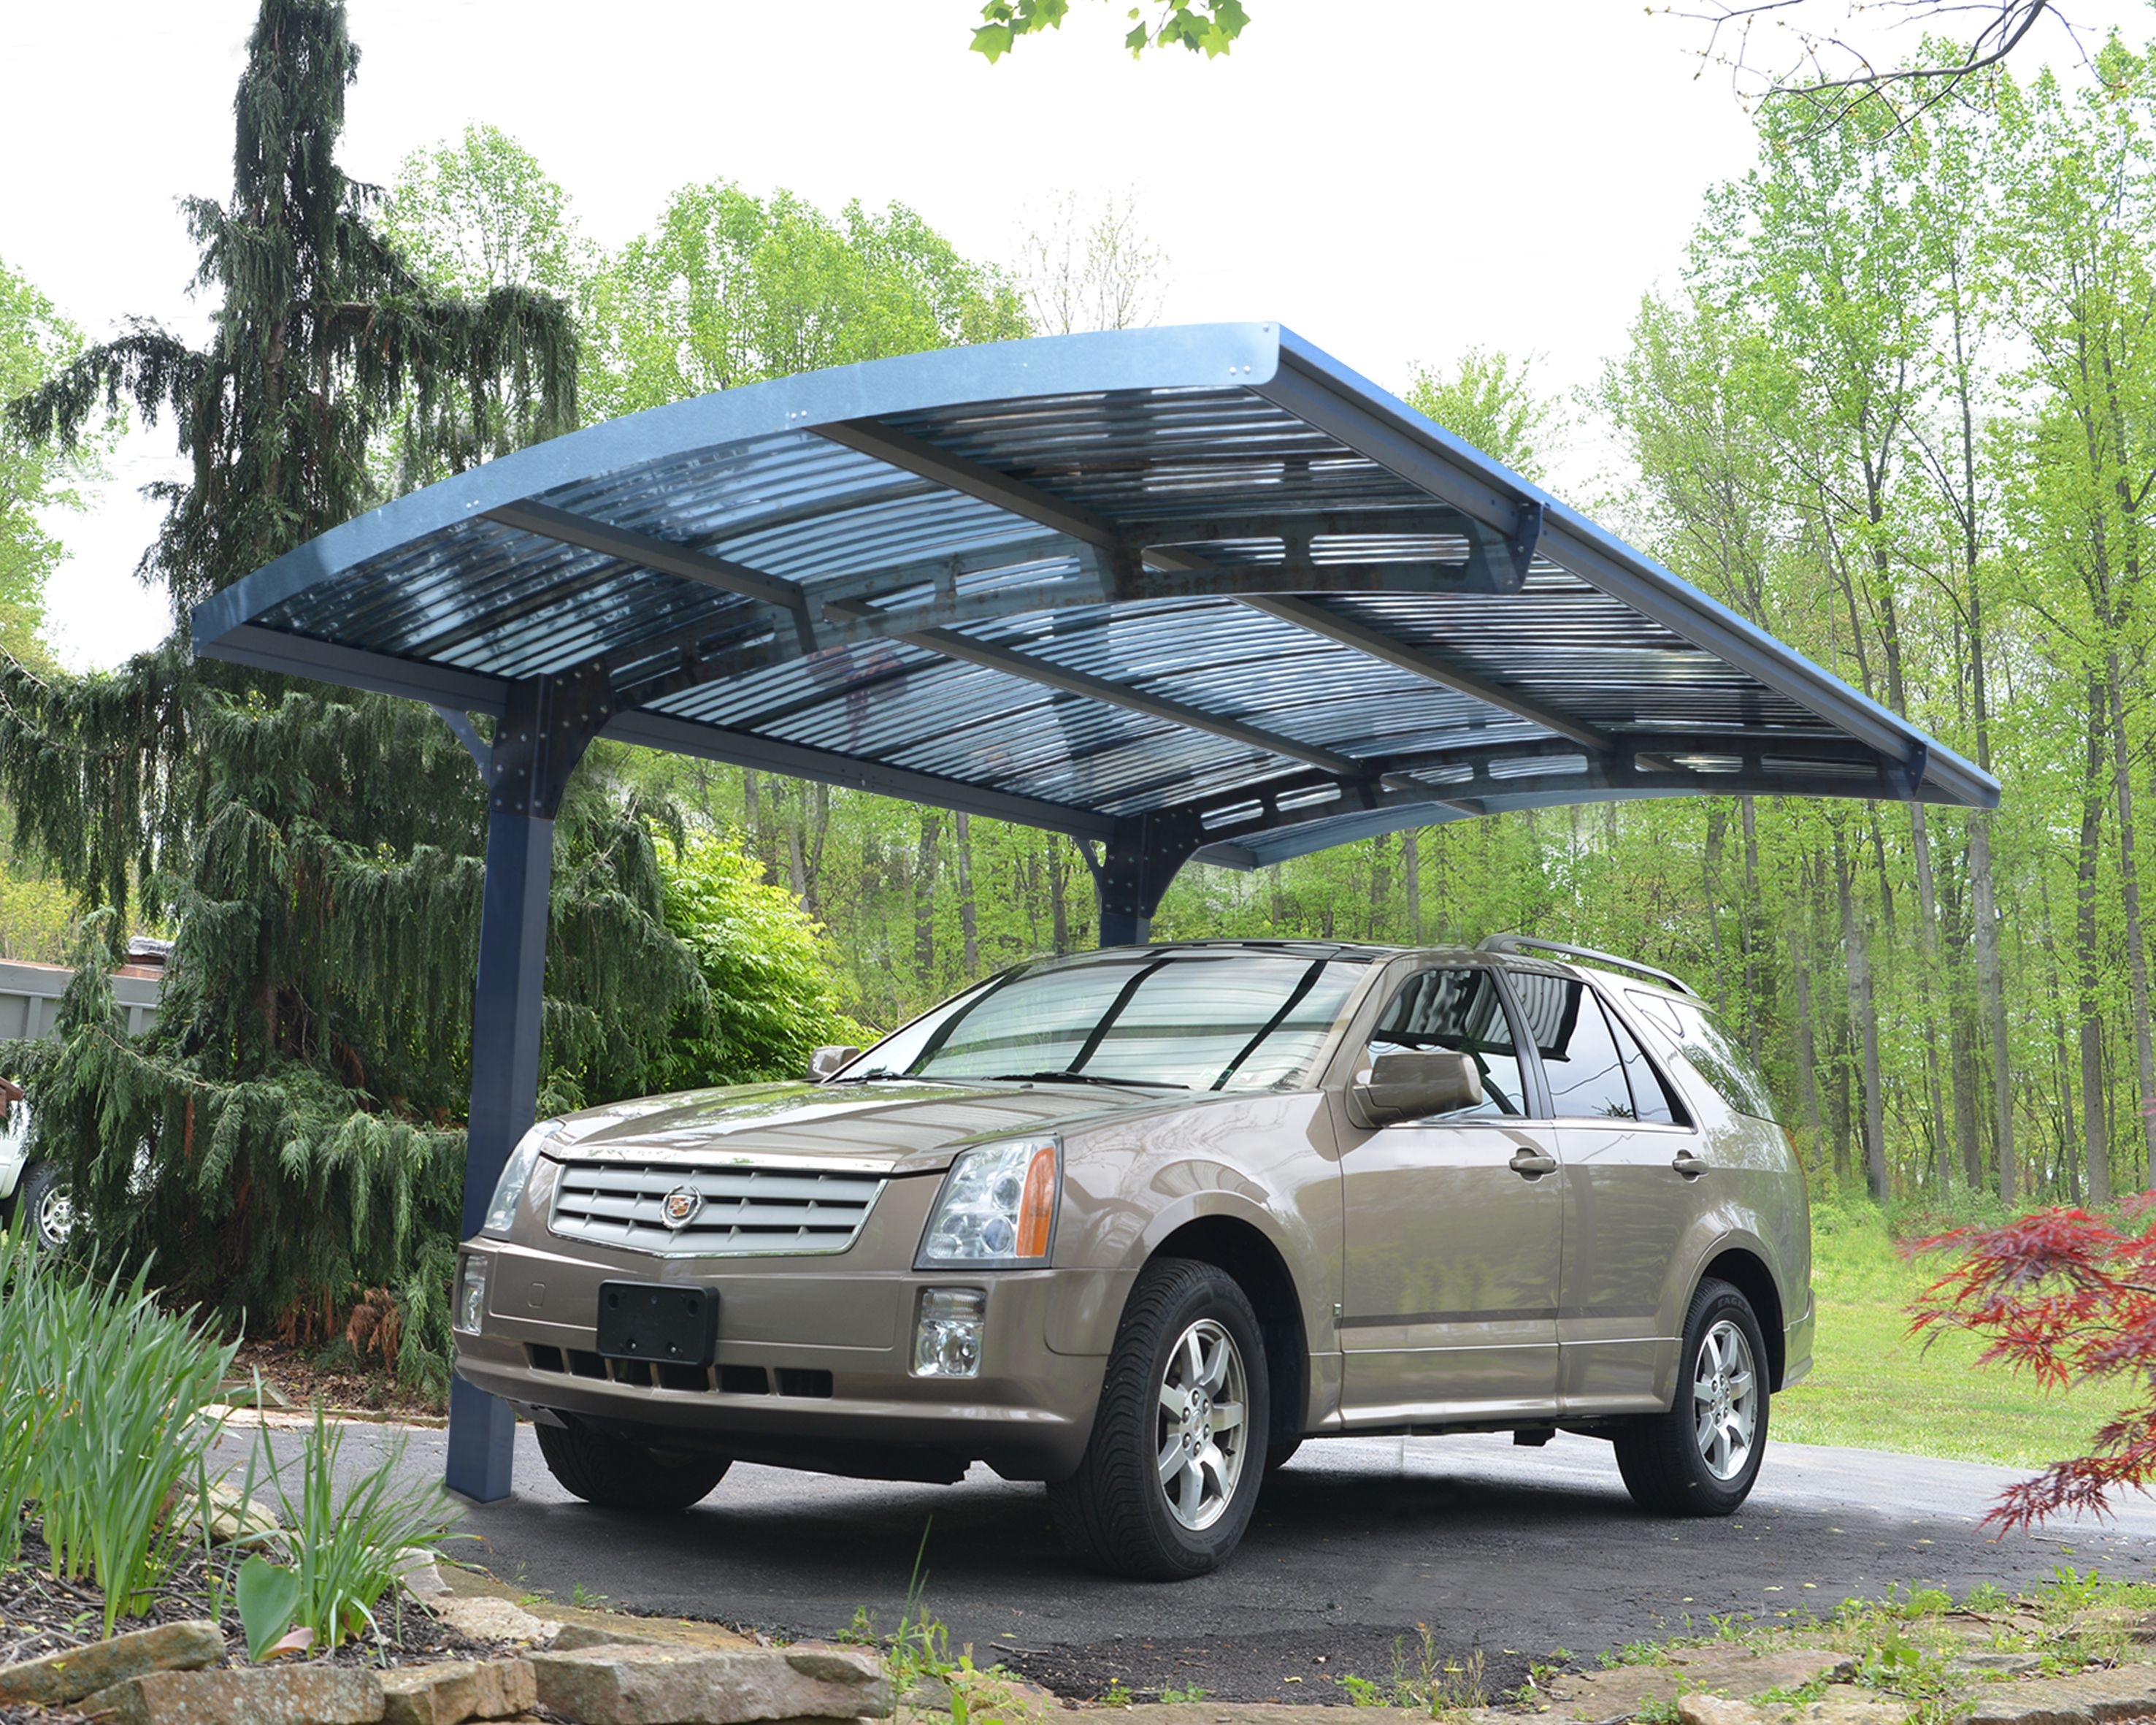 The Arizona Is A Uniquely Designed High Performance And Robust Carport And Outdoor Structure It Was Crafted Metal Carports Carport Designs Metal Carport Kits